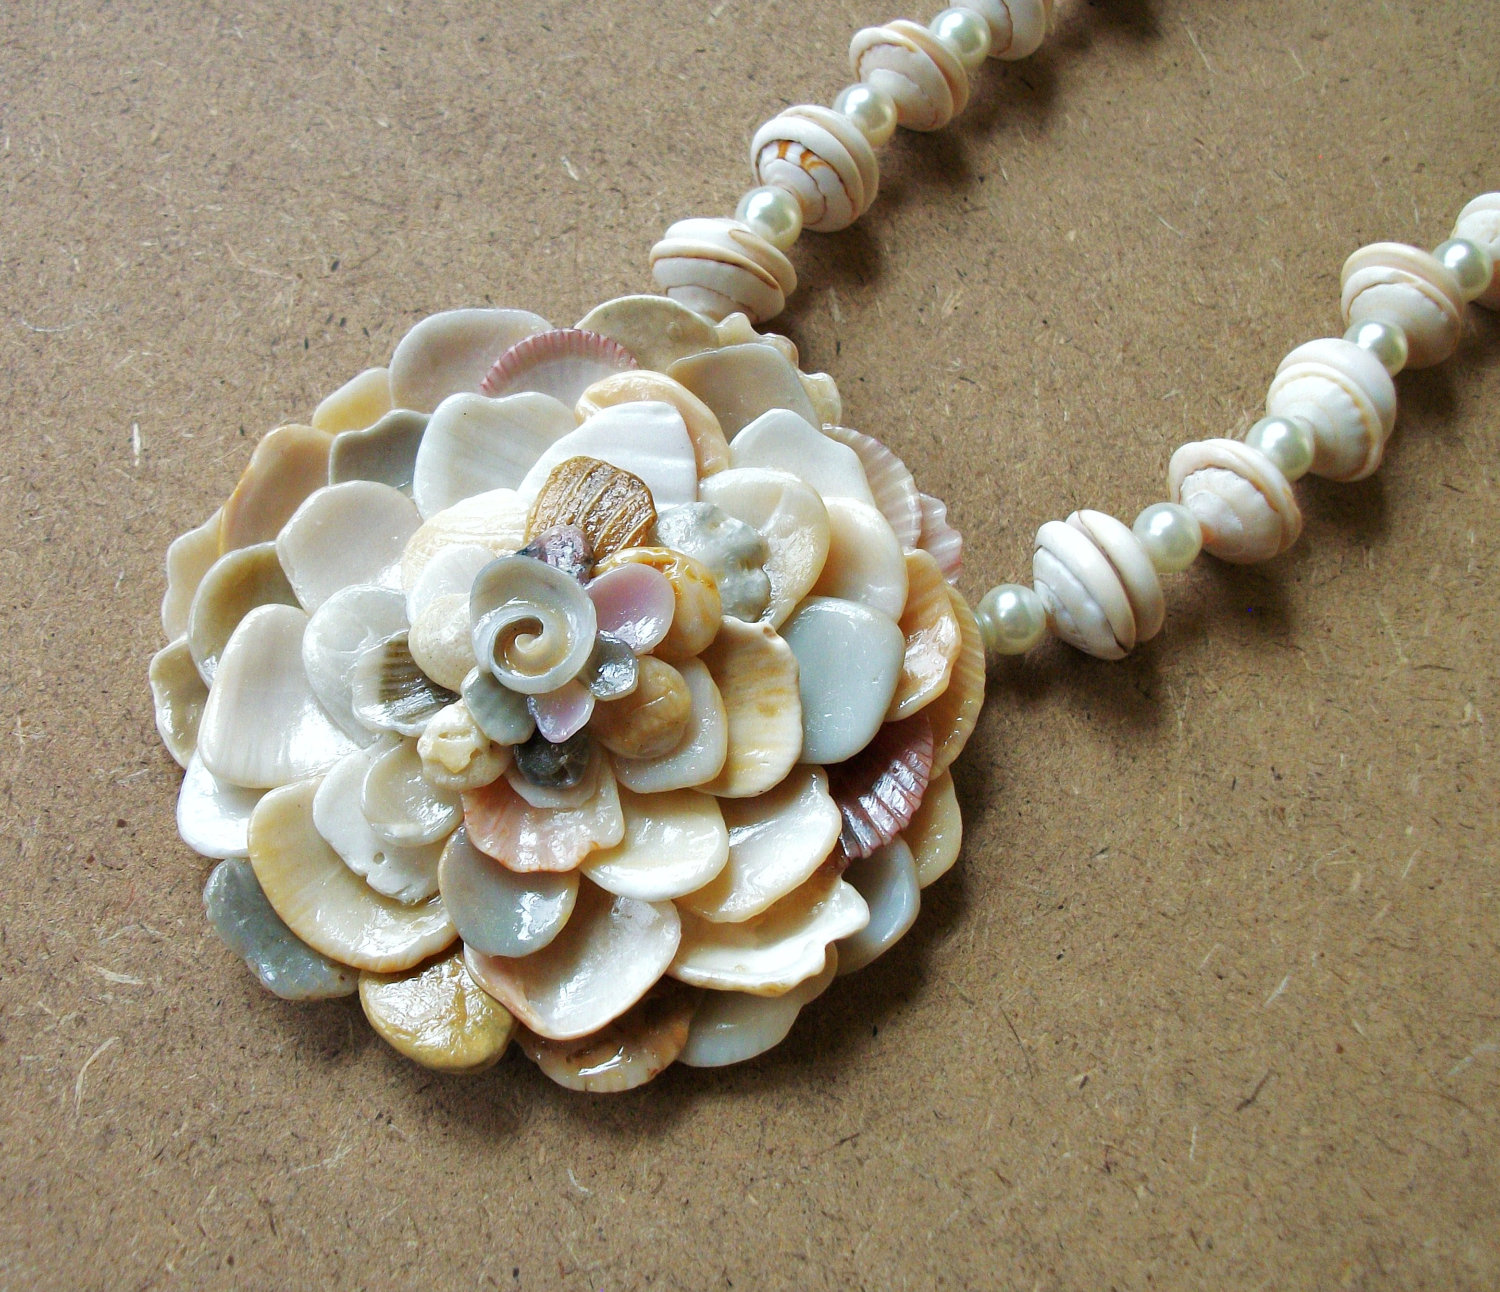 How To Make Seashell Jewelry Crafts